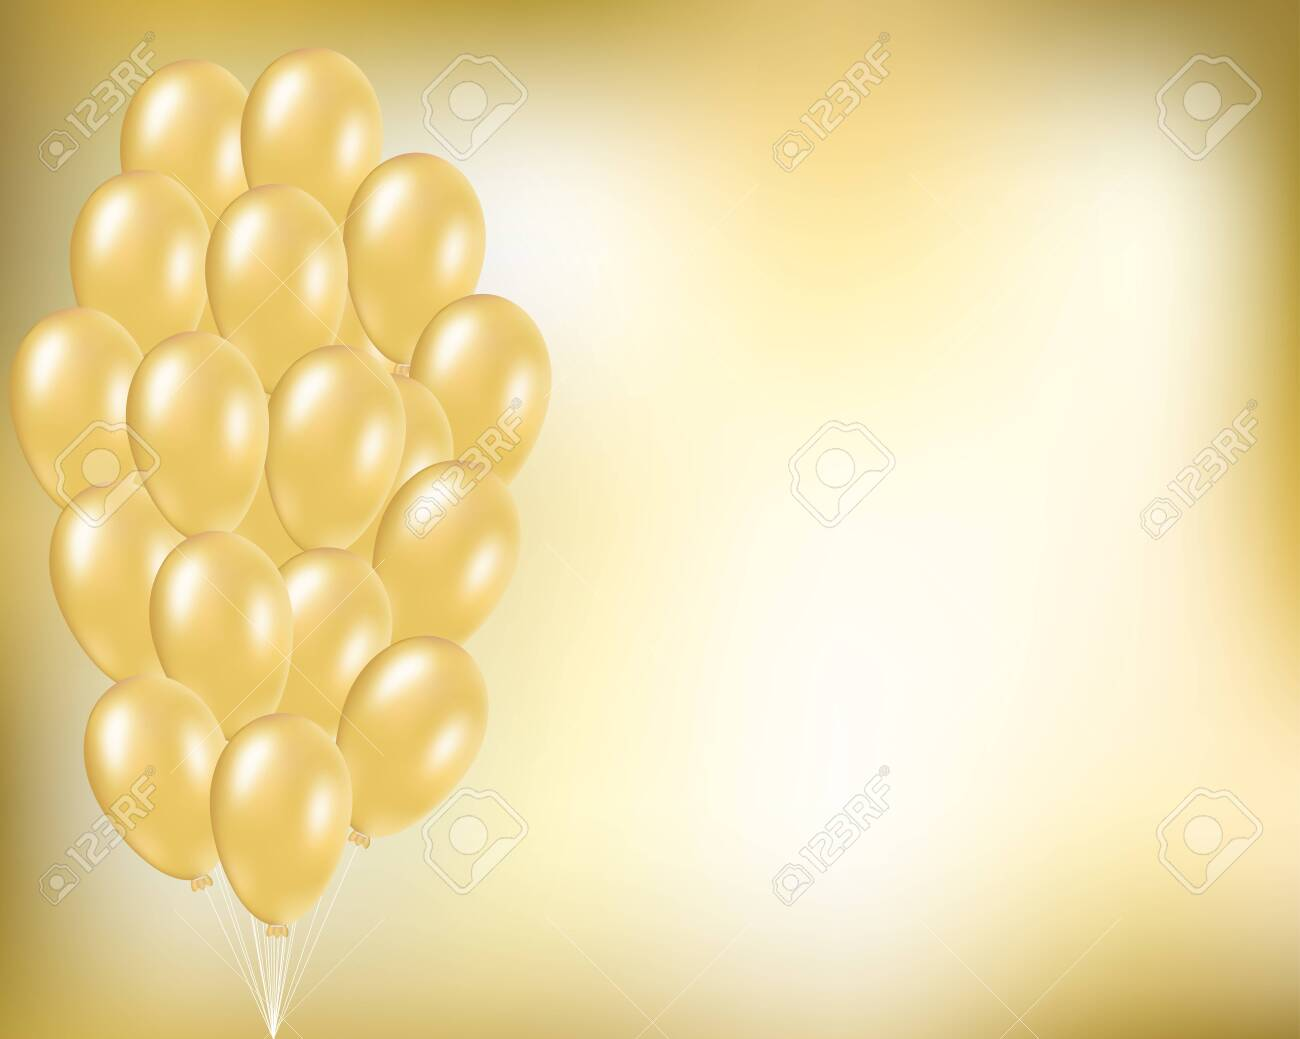 gold festive vector background with golden balloons in bunch